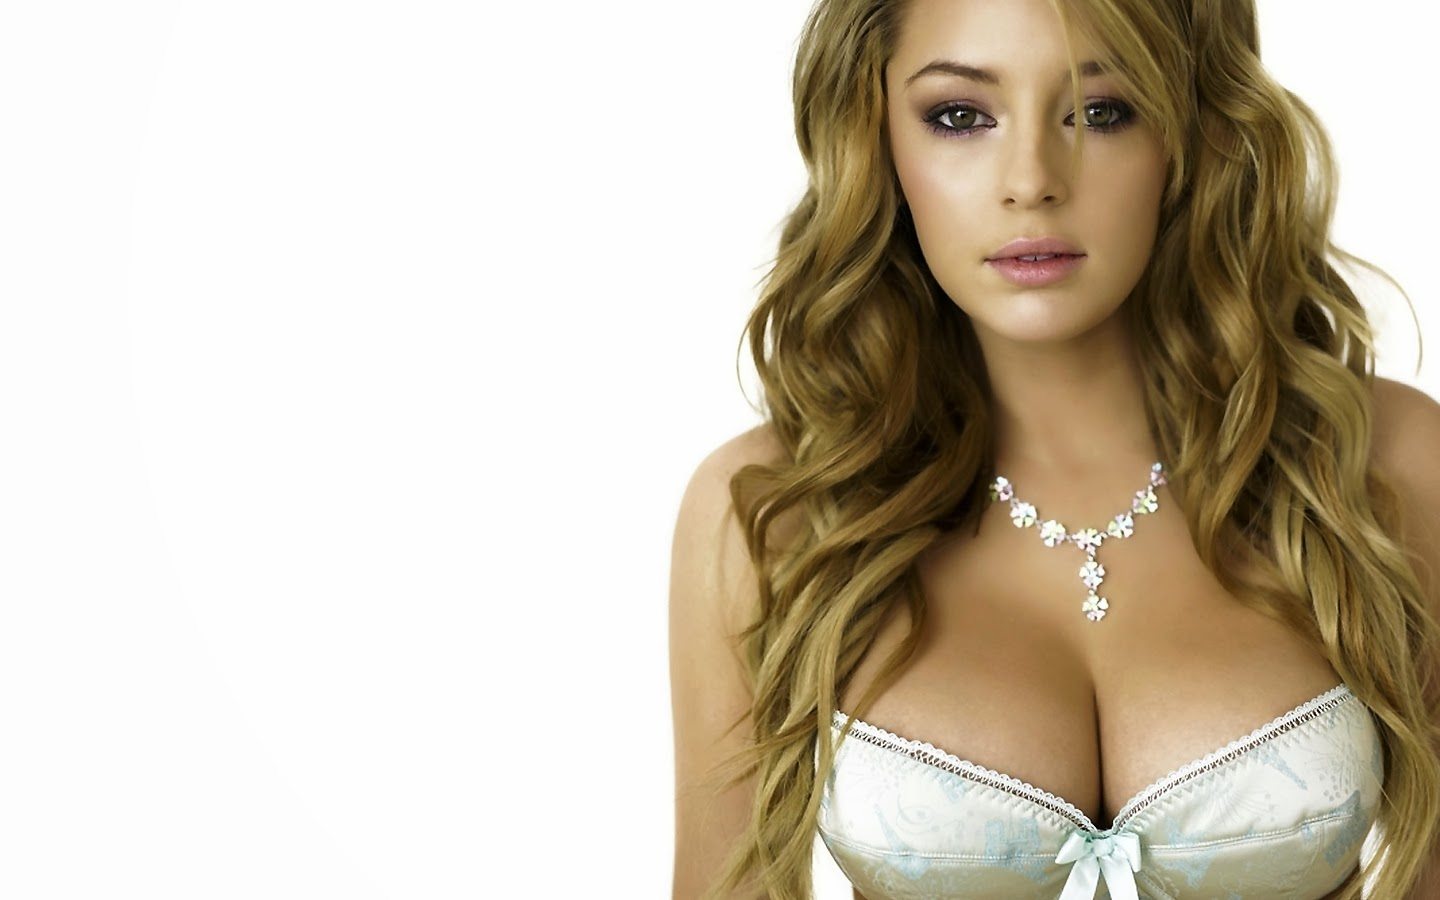 Keeley Hazell HD Wallpapers Free Download